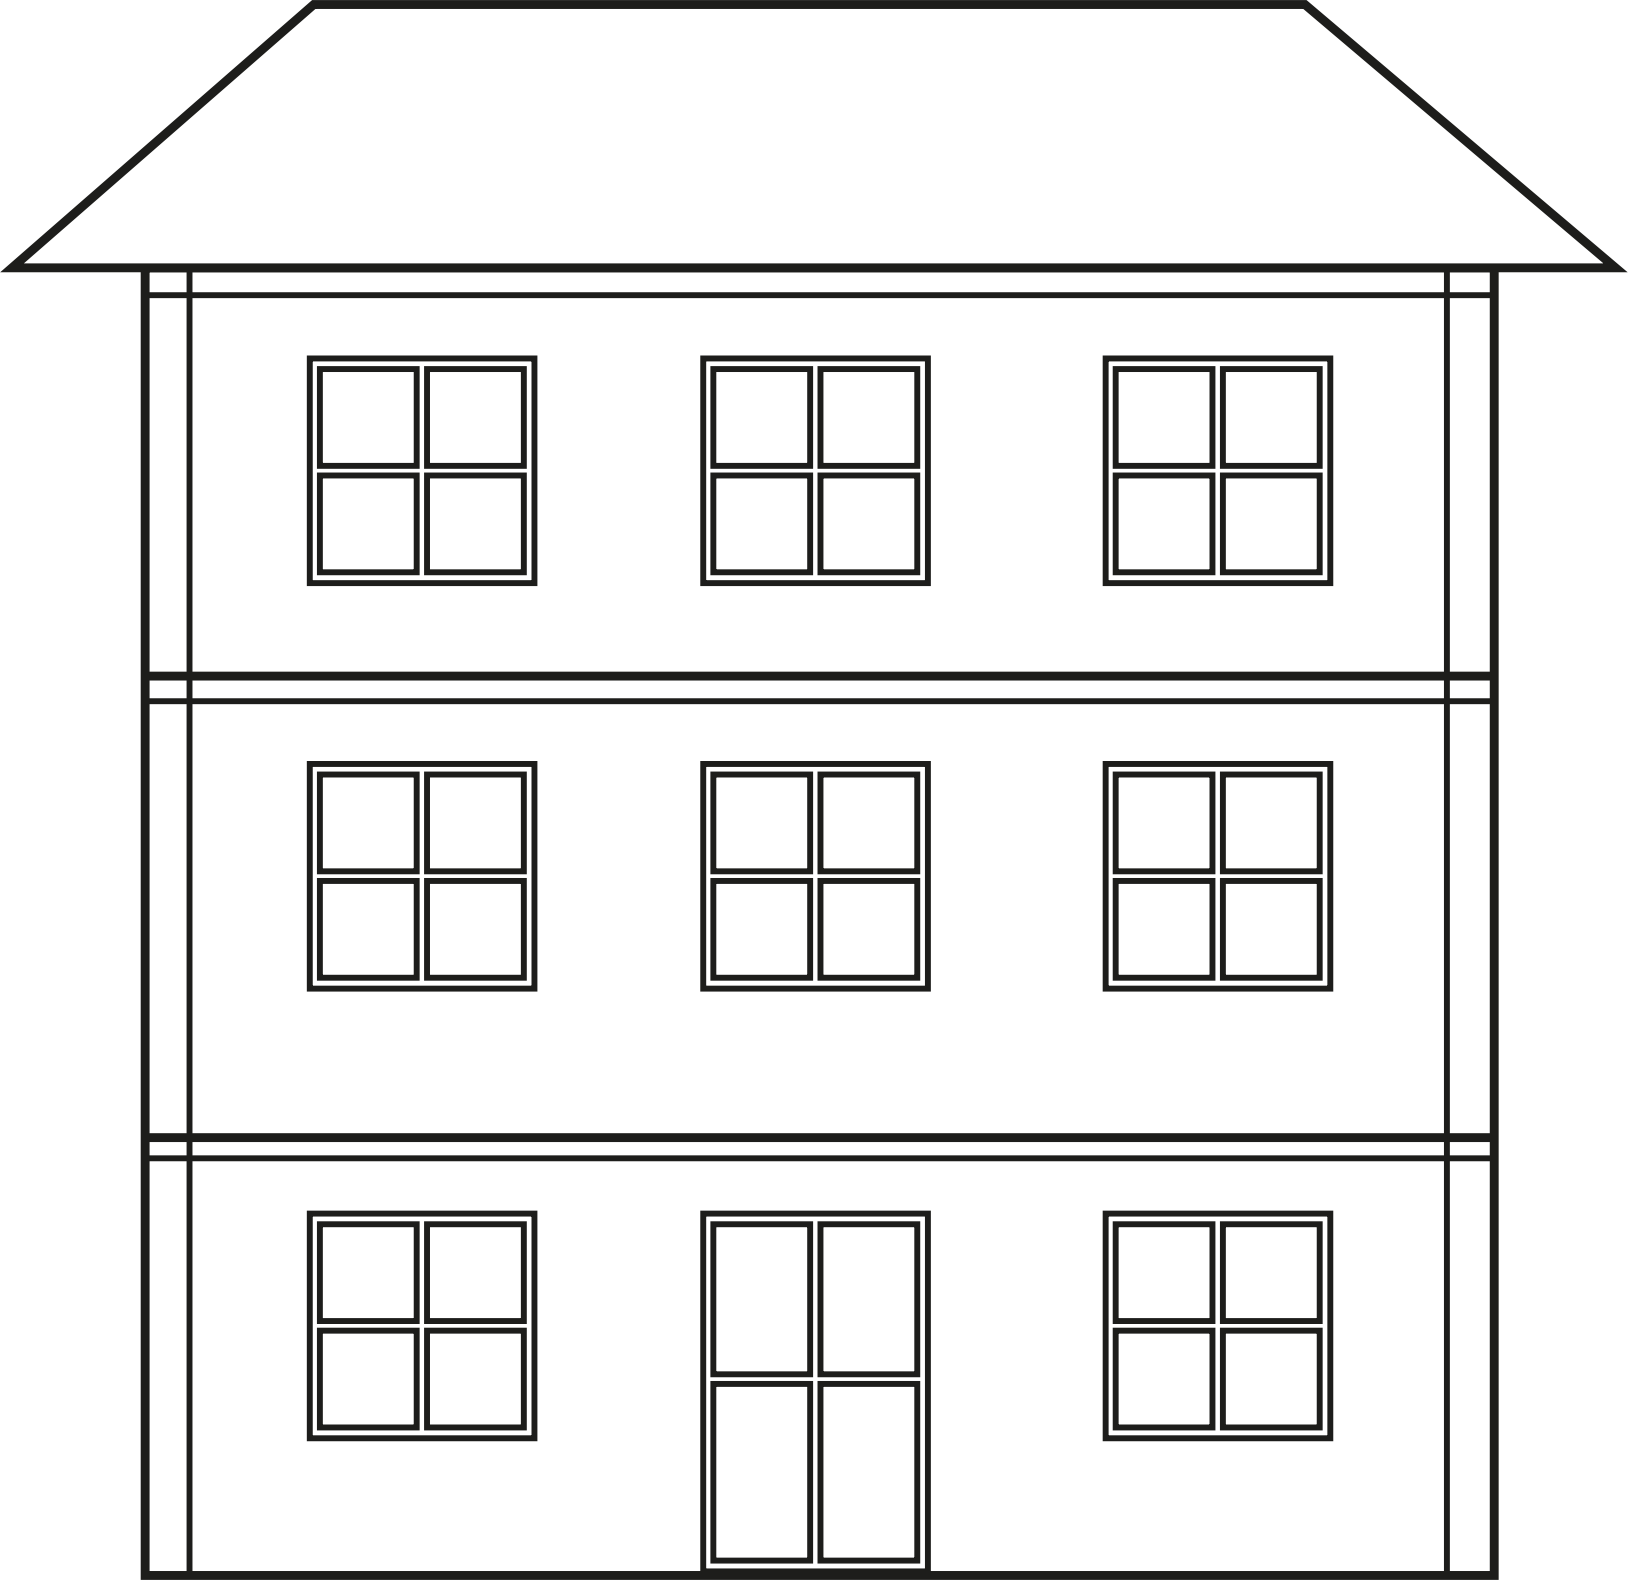 Houses clipart jpeg, Houses jpeg Transparent FREE for.